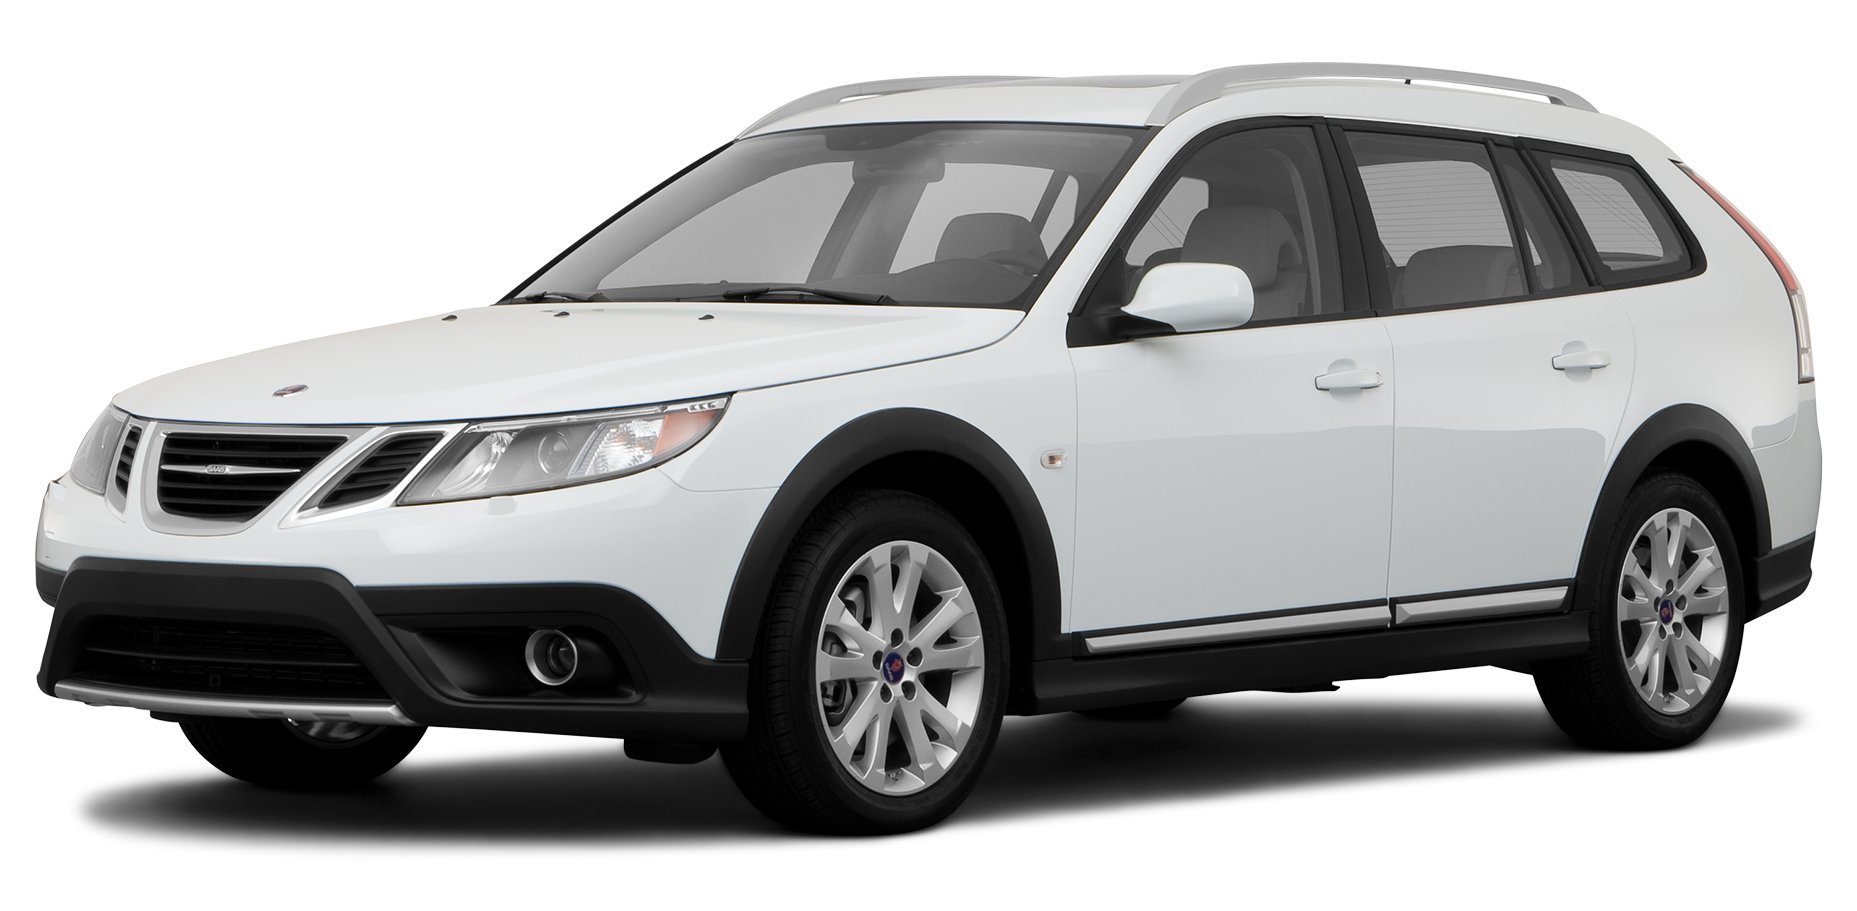 ... 2010 Saab 9-3 9-3X, 4-Door Wagon All Wheel Drive ...